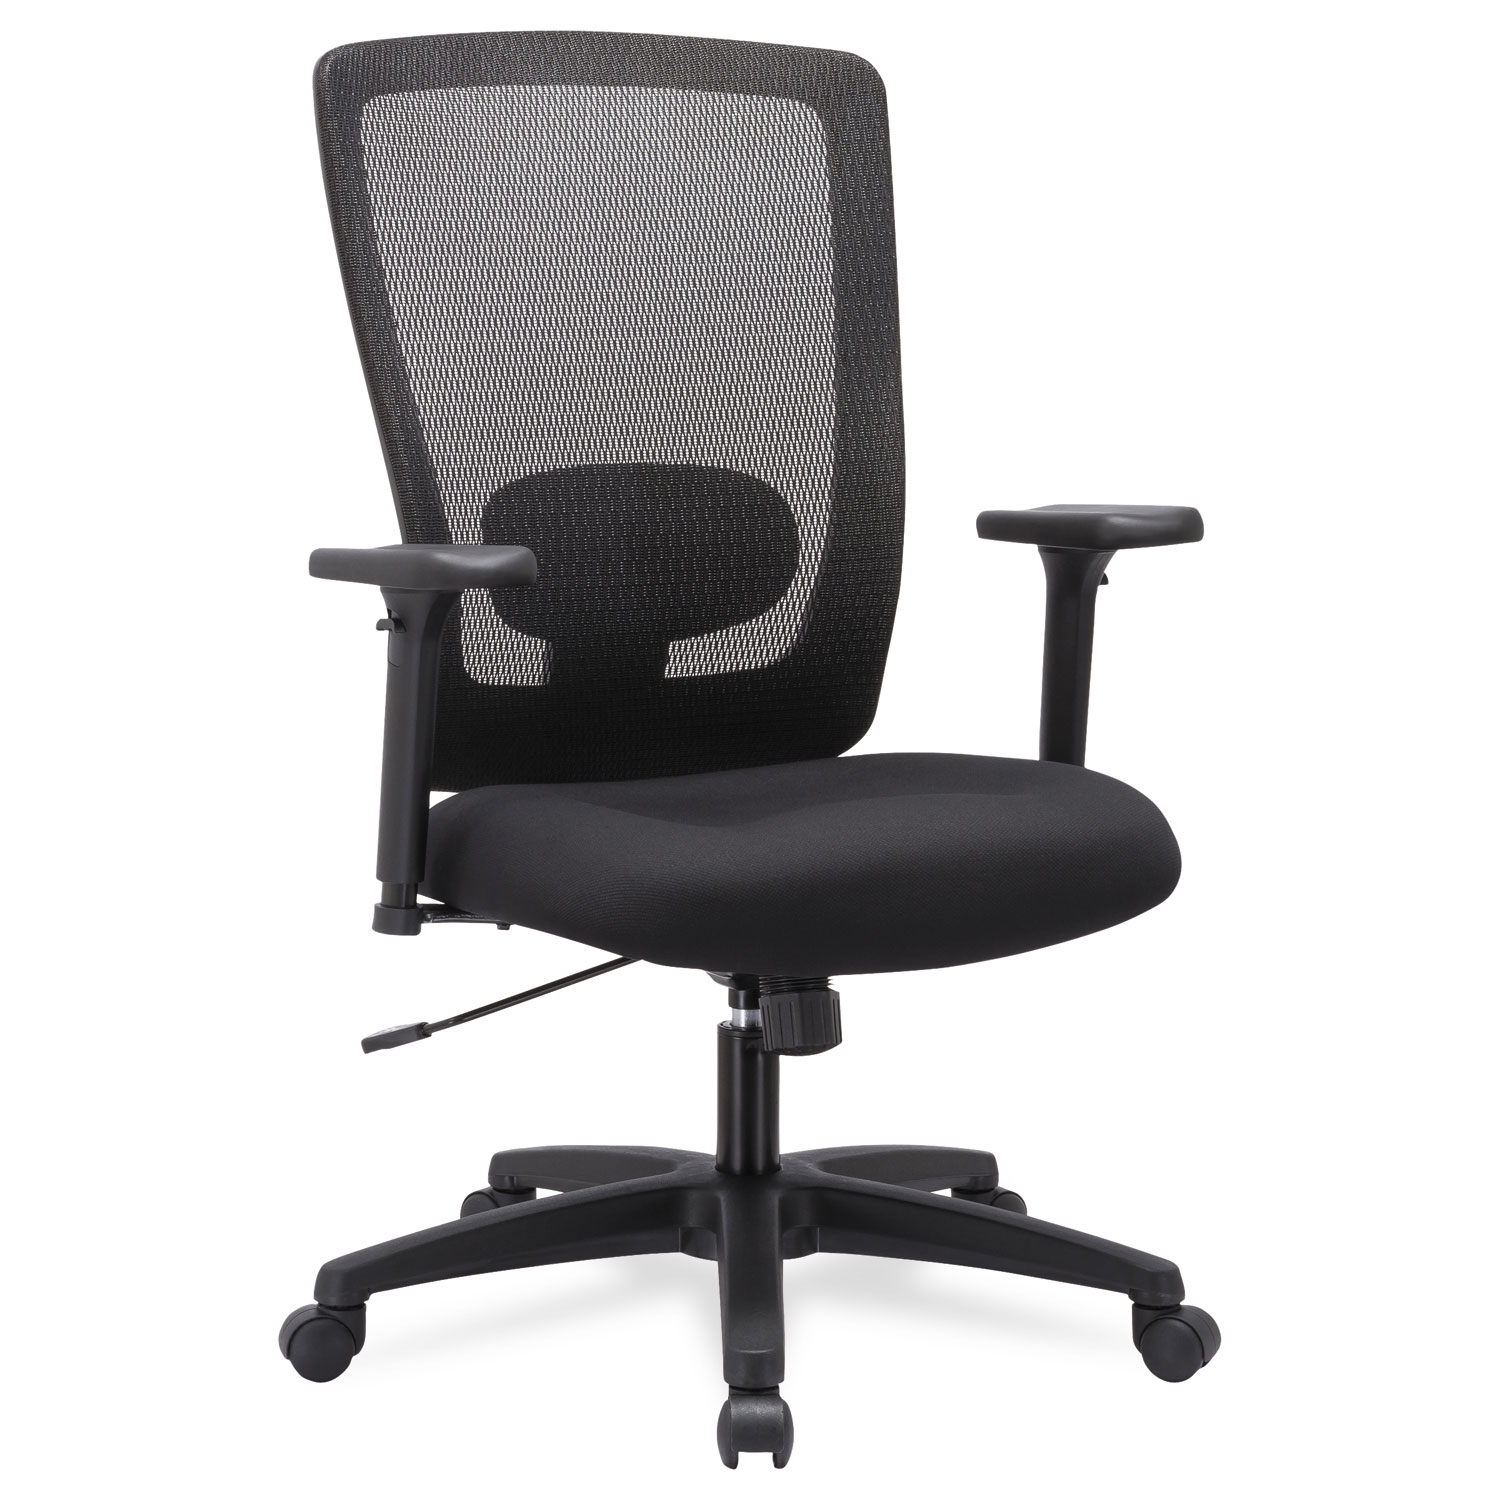 Awe Inspiring Alera Envy Series Mesh High Back Swivel Tilt Chair Supports Up To 250 Lbs Black Seat Black Back Black Base Dailytribune Chair Design For Home Dailytribuneorg